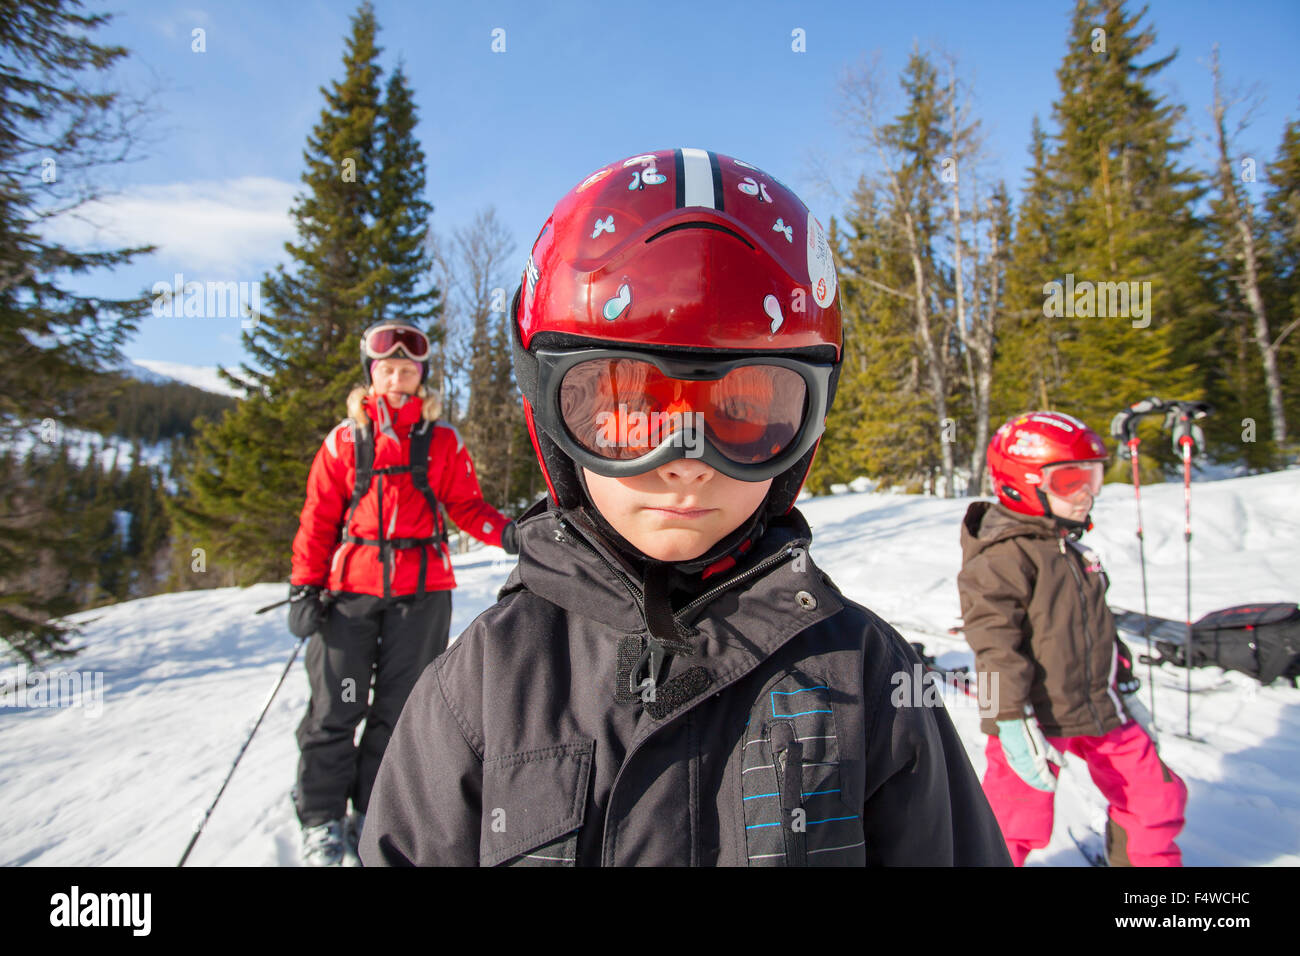 Norway, Osterdalen, Trysil, Mom and her two children (4-5, 8-9) walking down ski slope - Stock Image